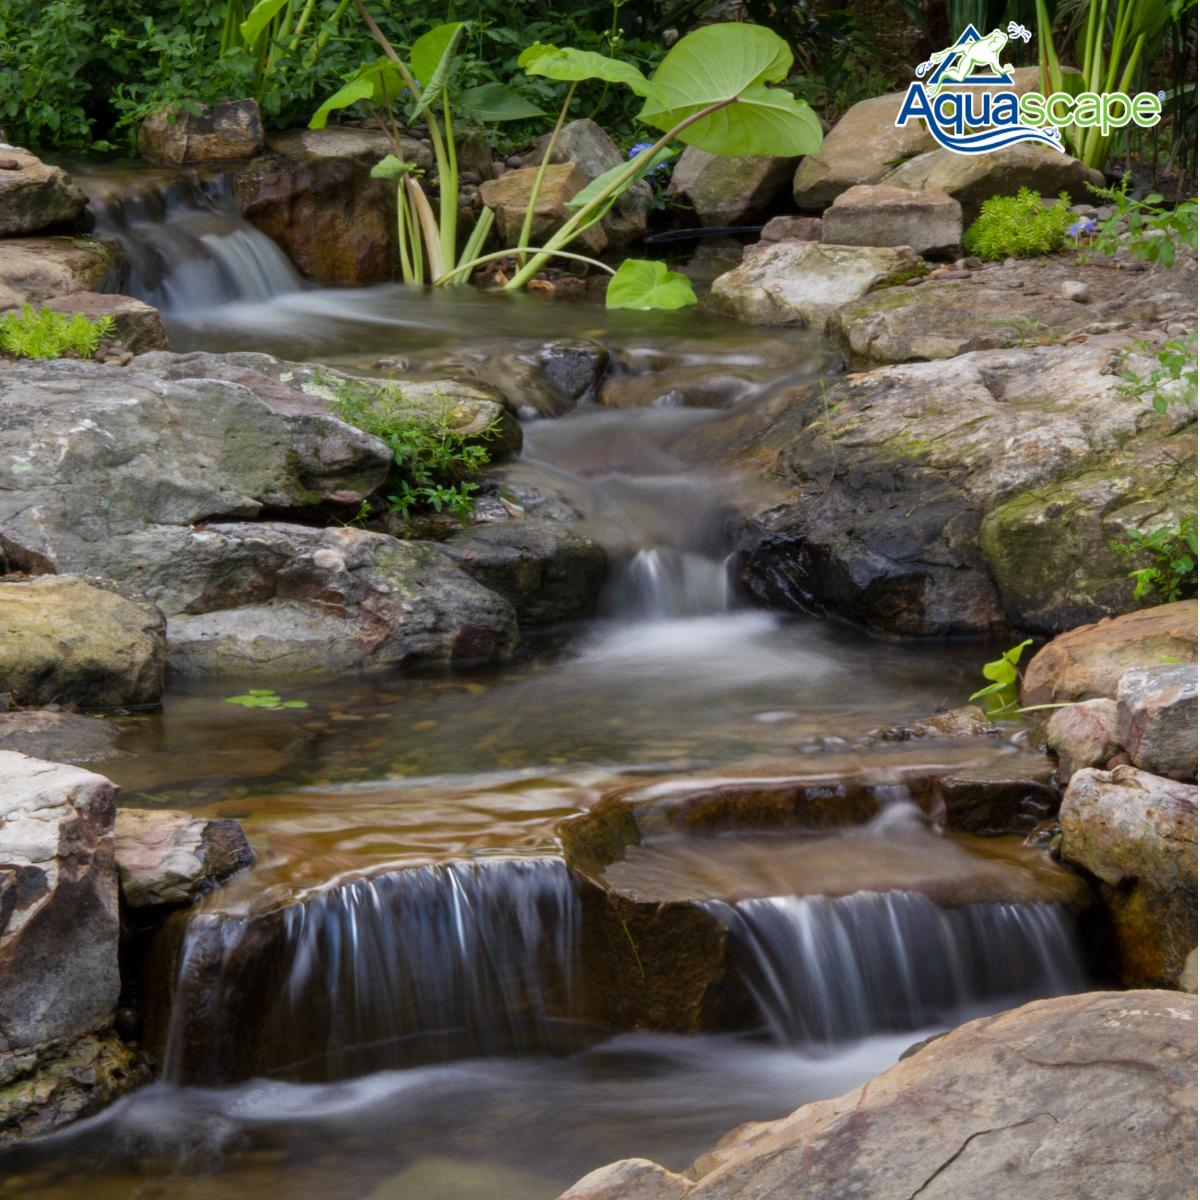 Amazon.com : Aquascape Waterfall Spillway for Pondless ...